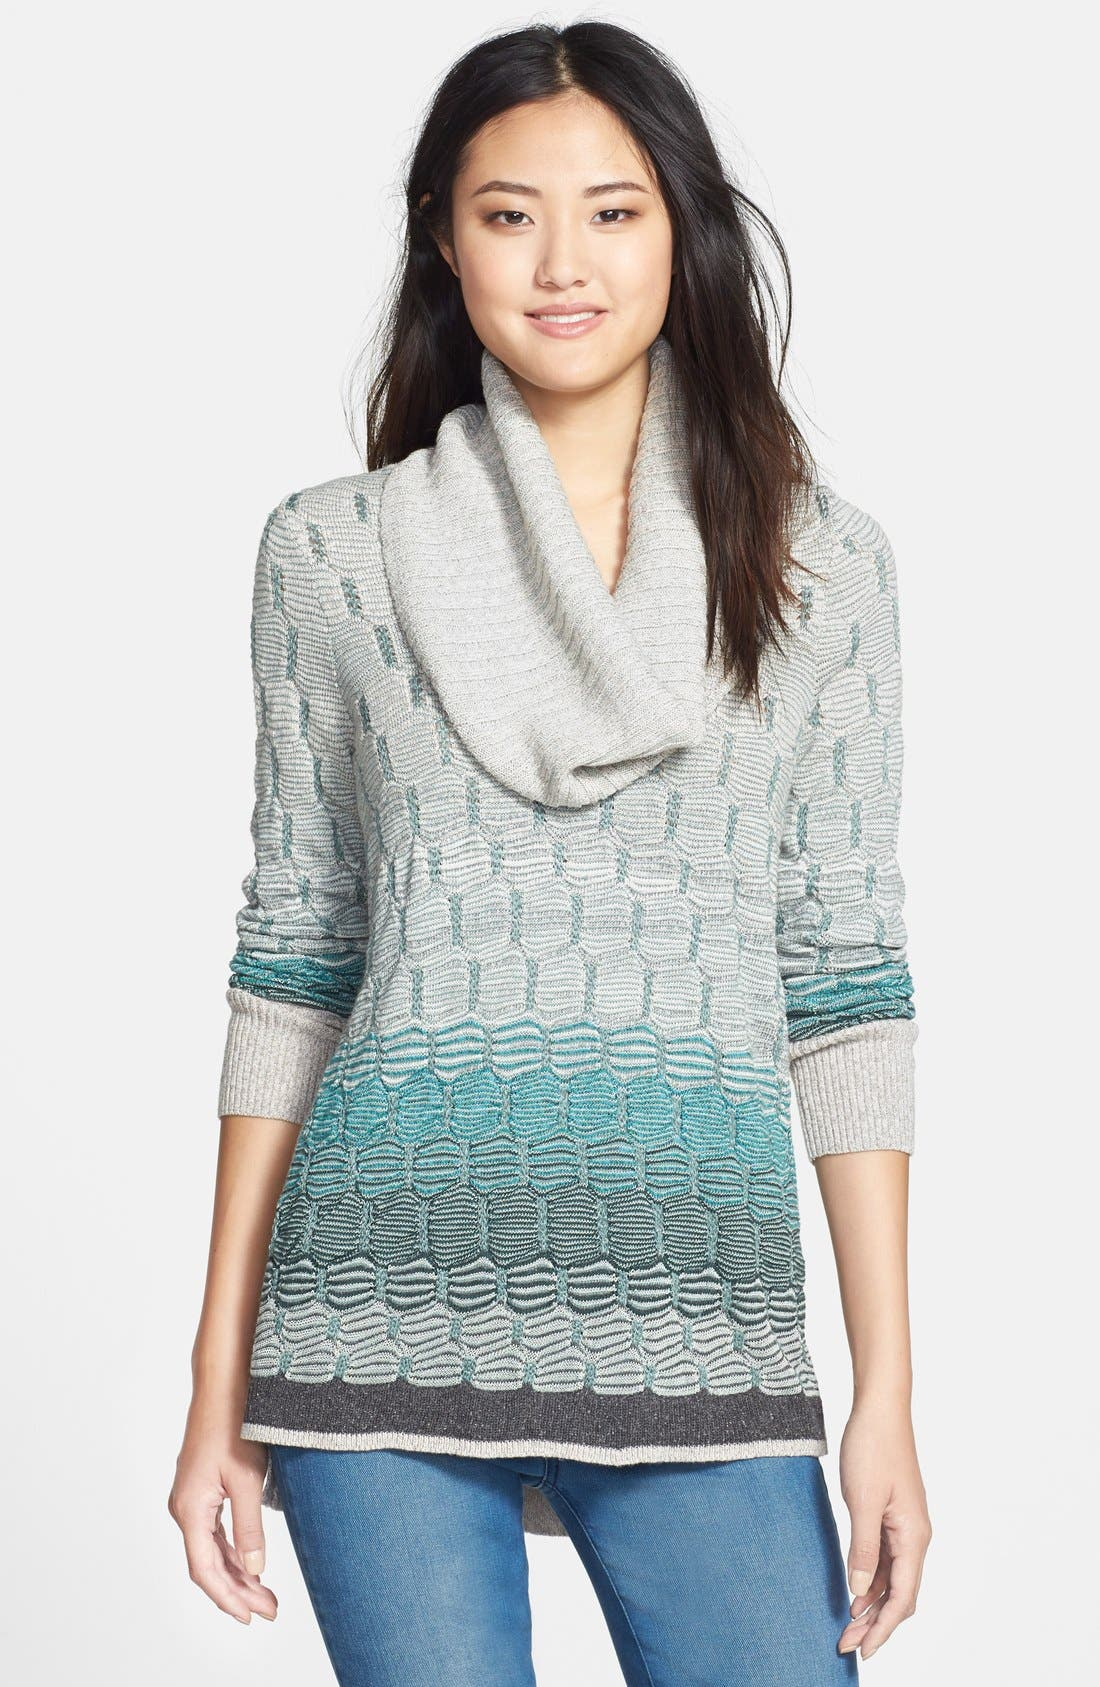 Main Image - NIC+ZOE Textured Ombré Sweater with Removable Cowl (Regular & Petite)